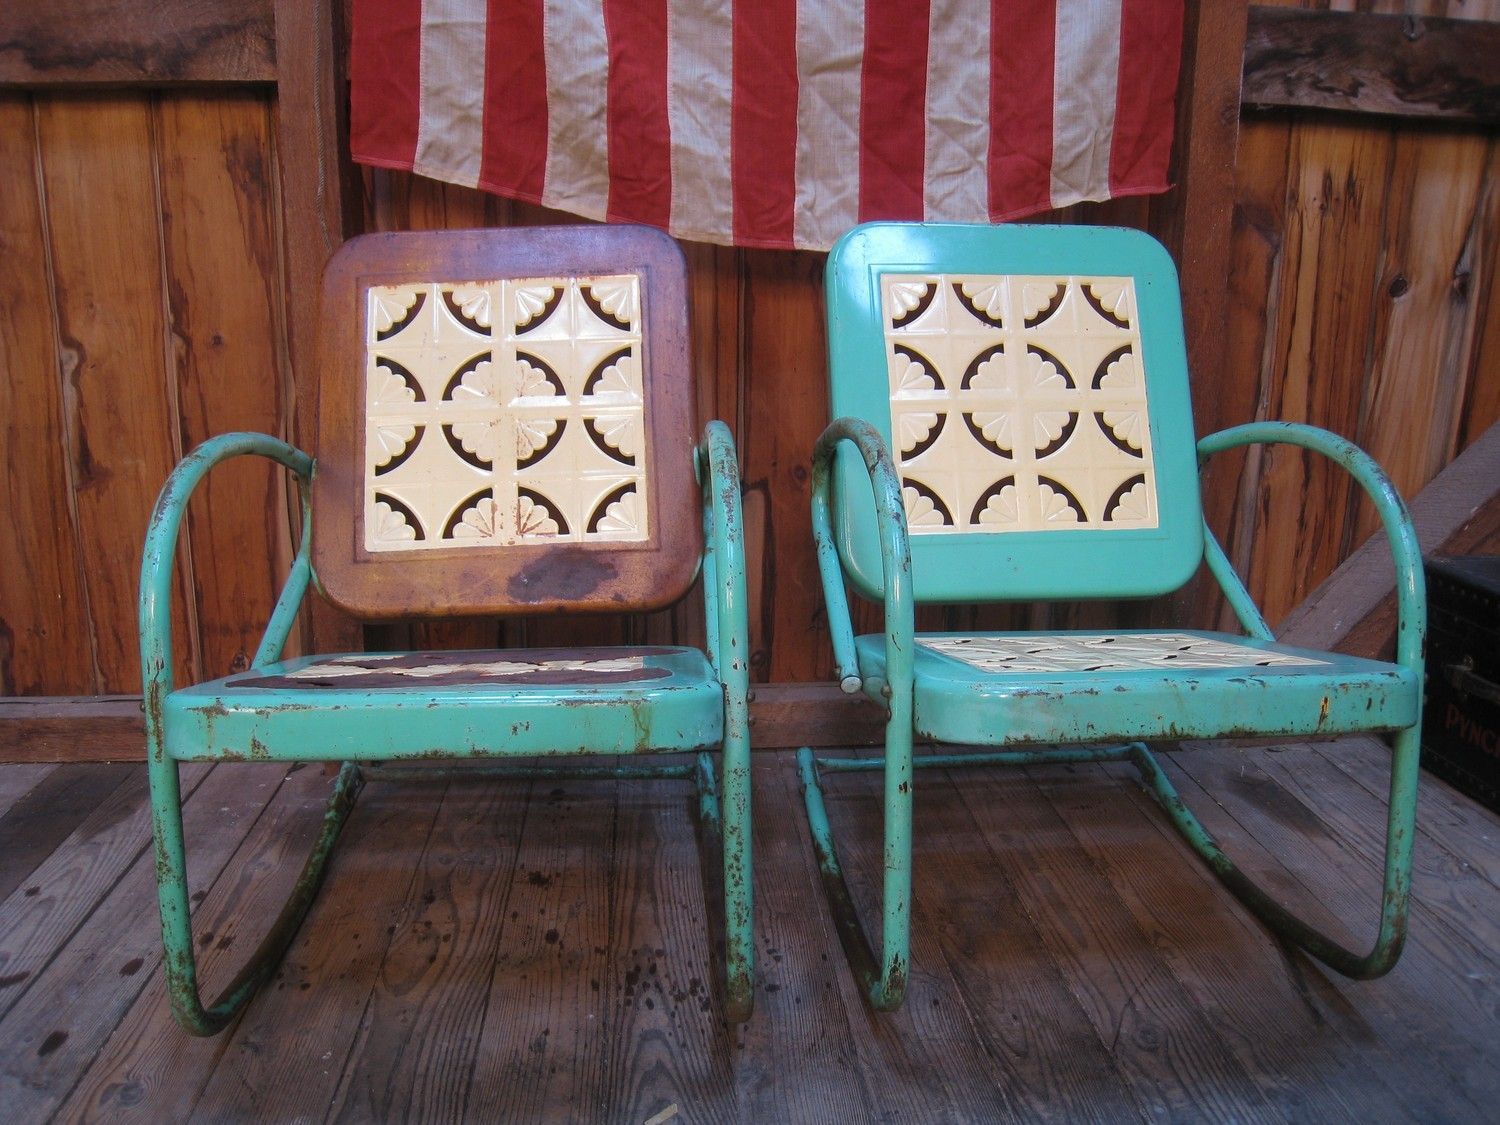 retro metal patio chairs how to make a chair cover from sheet vintage 1950s lawn porch glider